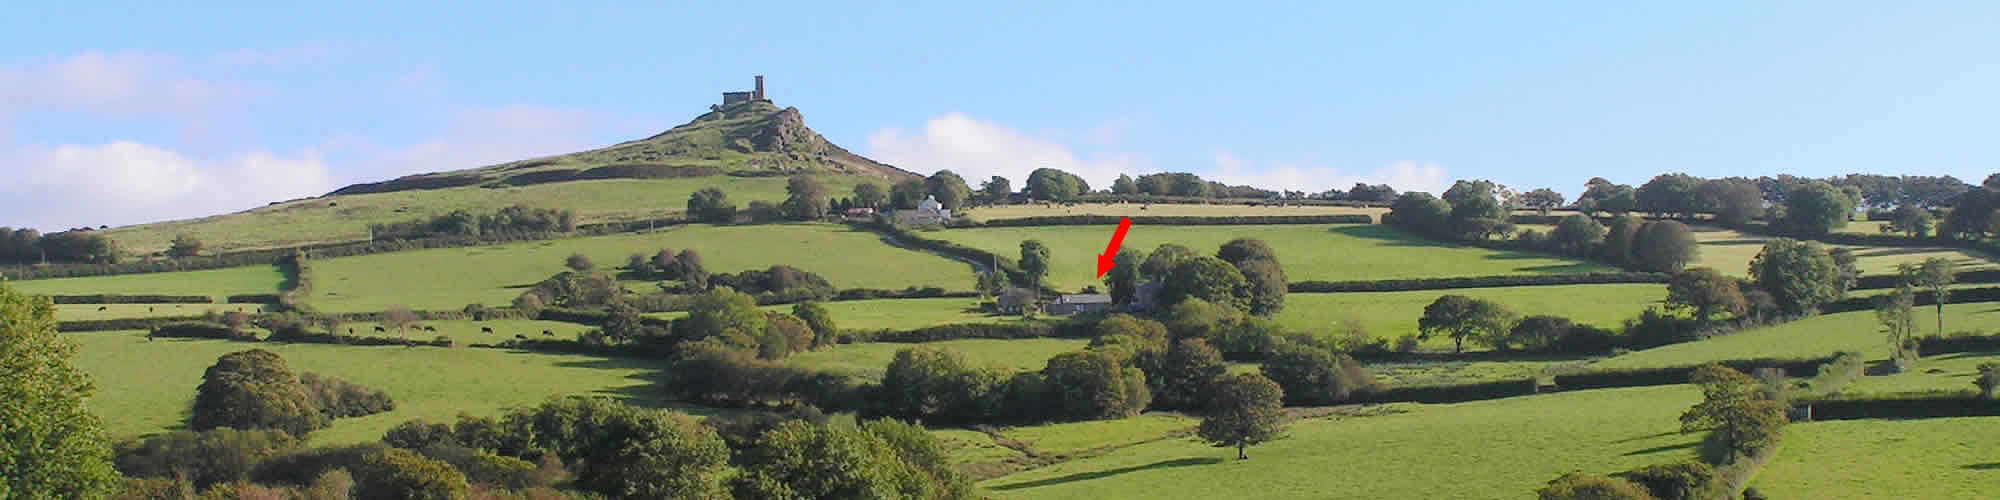 A peaceful and quiet location near Brentor Church on the edge Dartmoor, Devon